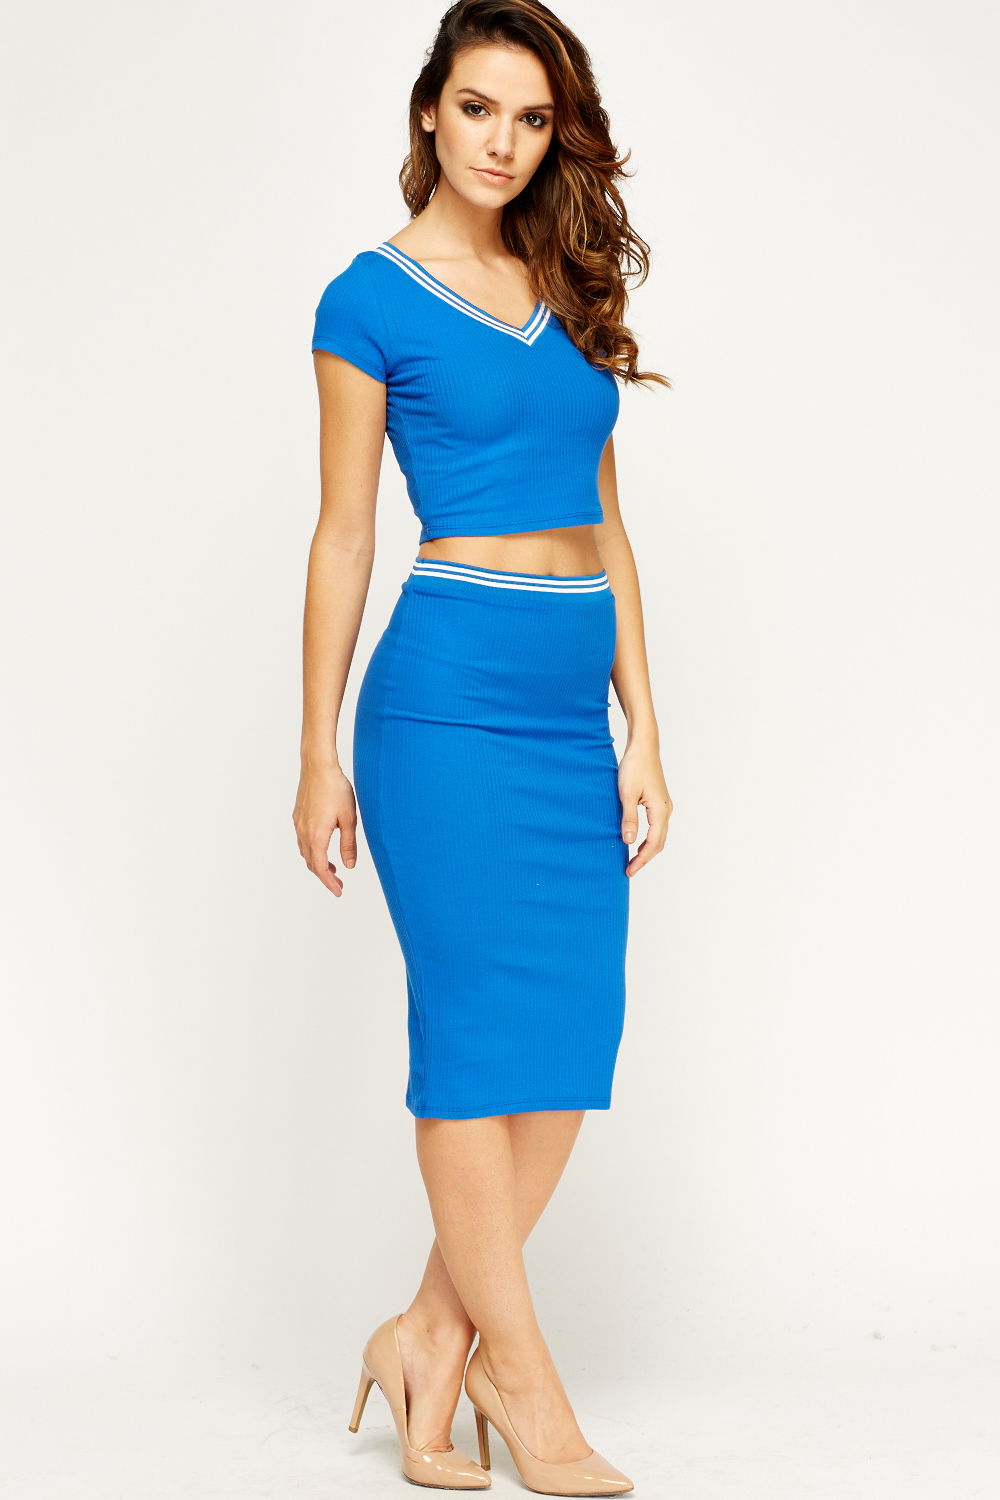 Contrast Trim Cropped Top And Skirt Set - Just £5